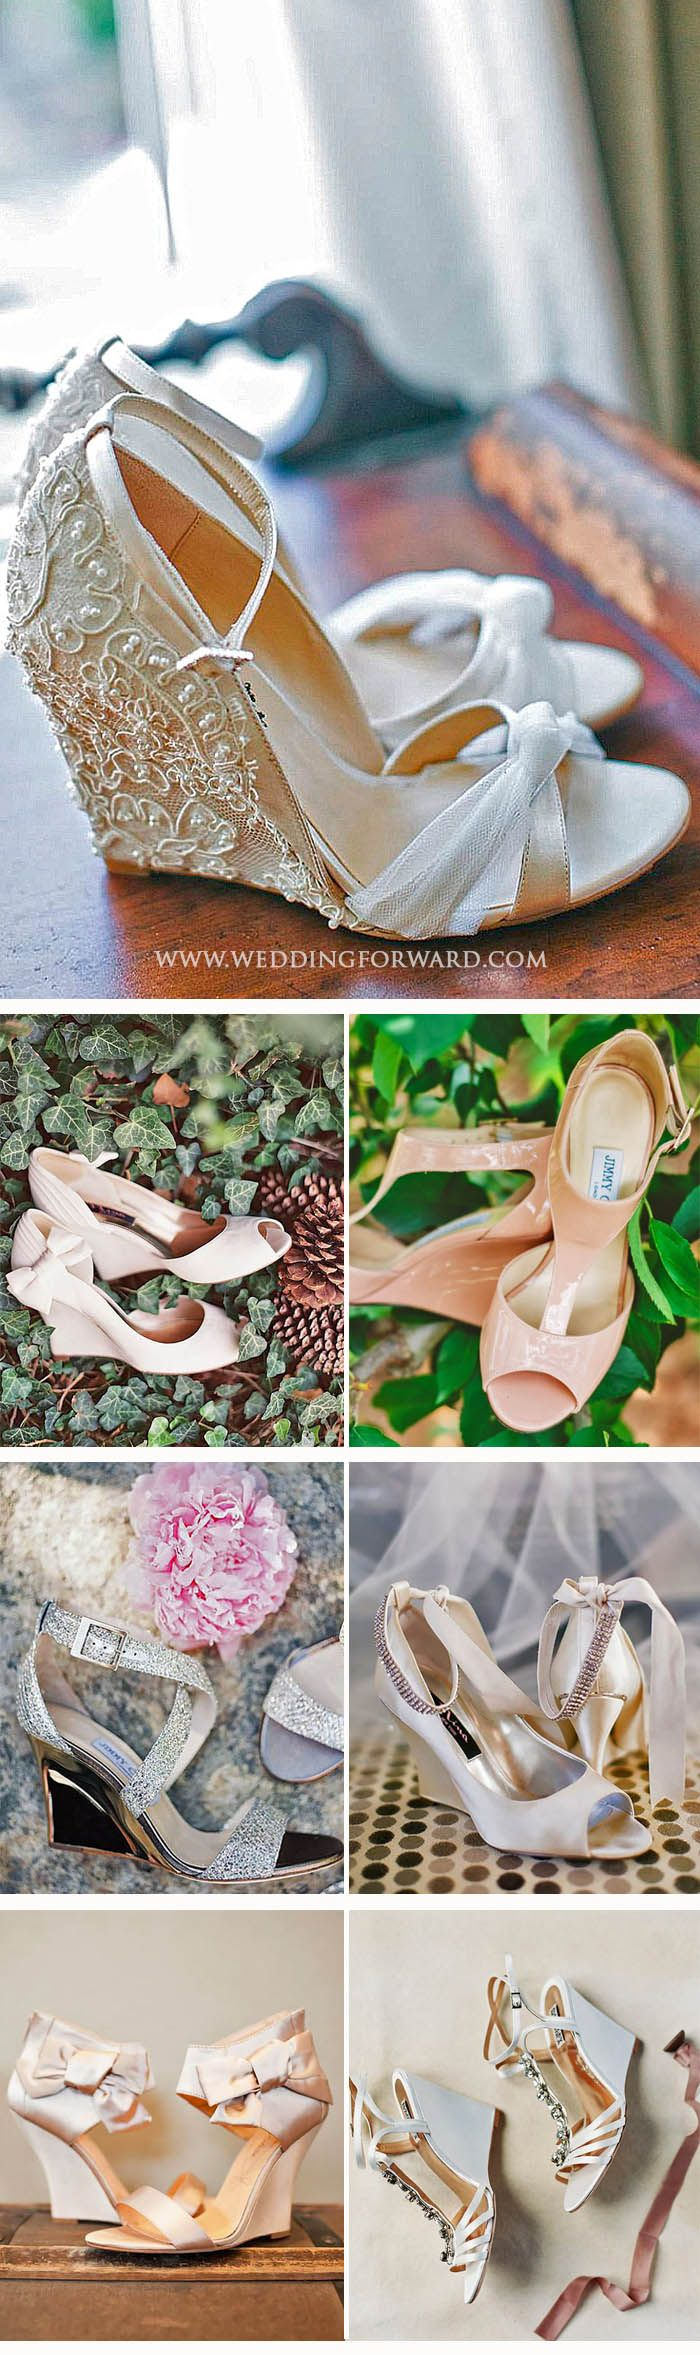 24 Wedge Wedding Shoes To Walk On Cloud ❤ From elegant wedge wedding shoes to sandal wedges, in these beautifull shoes you will floating on cloud from the morning to the unforgetable last dance. See more: http://www.weddingforward.com/wedge-wedding-shoes/ #weddings #shoes